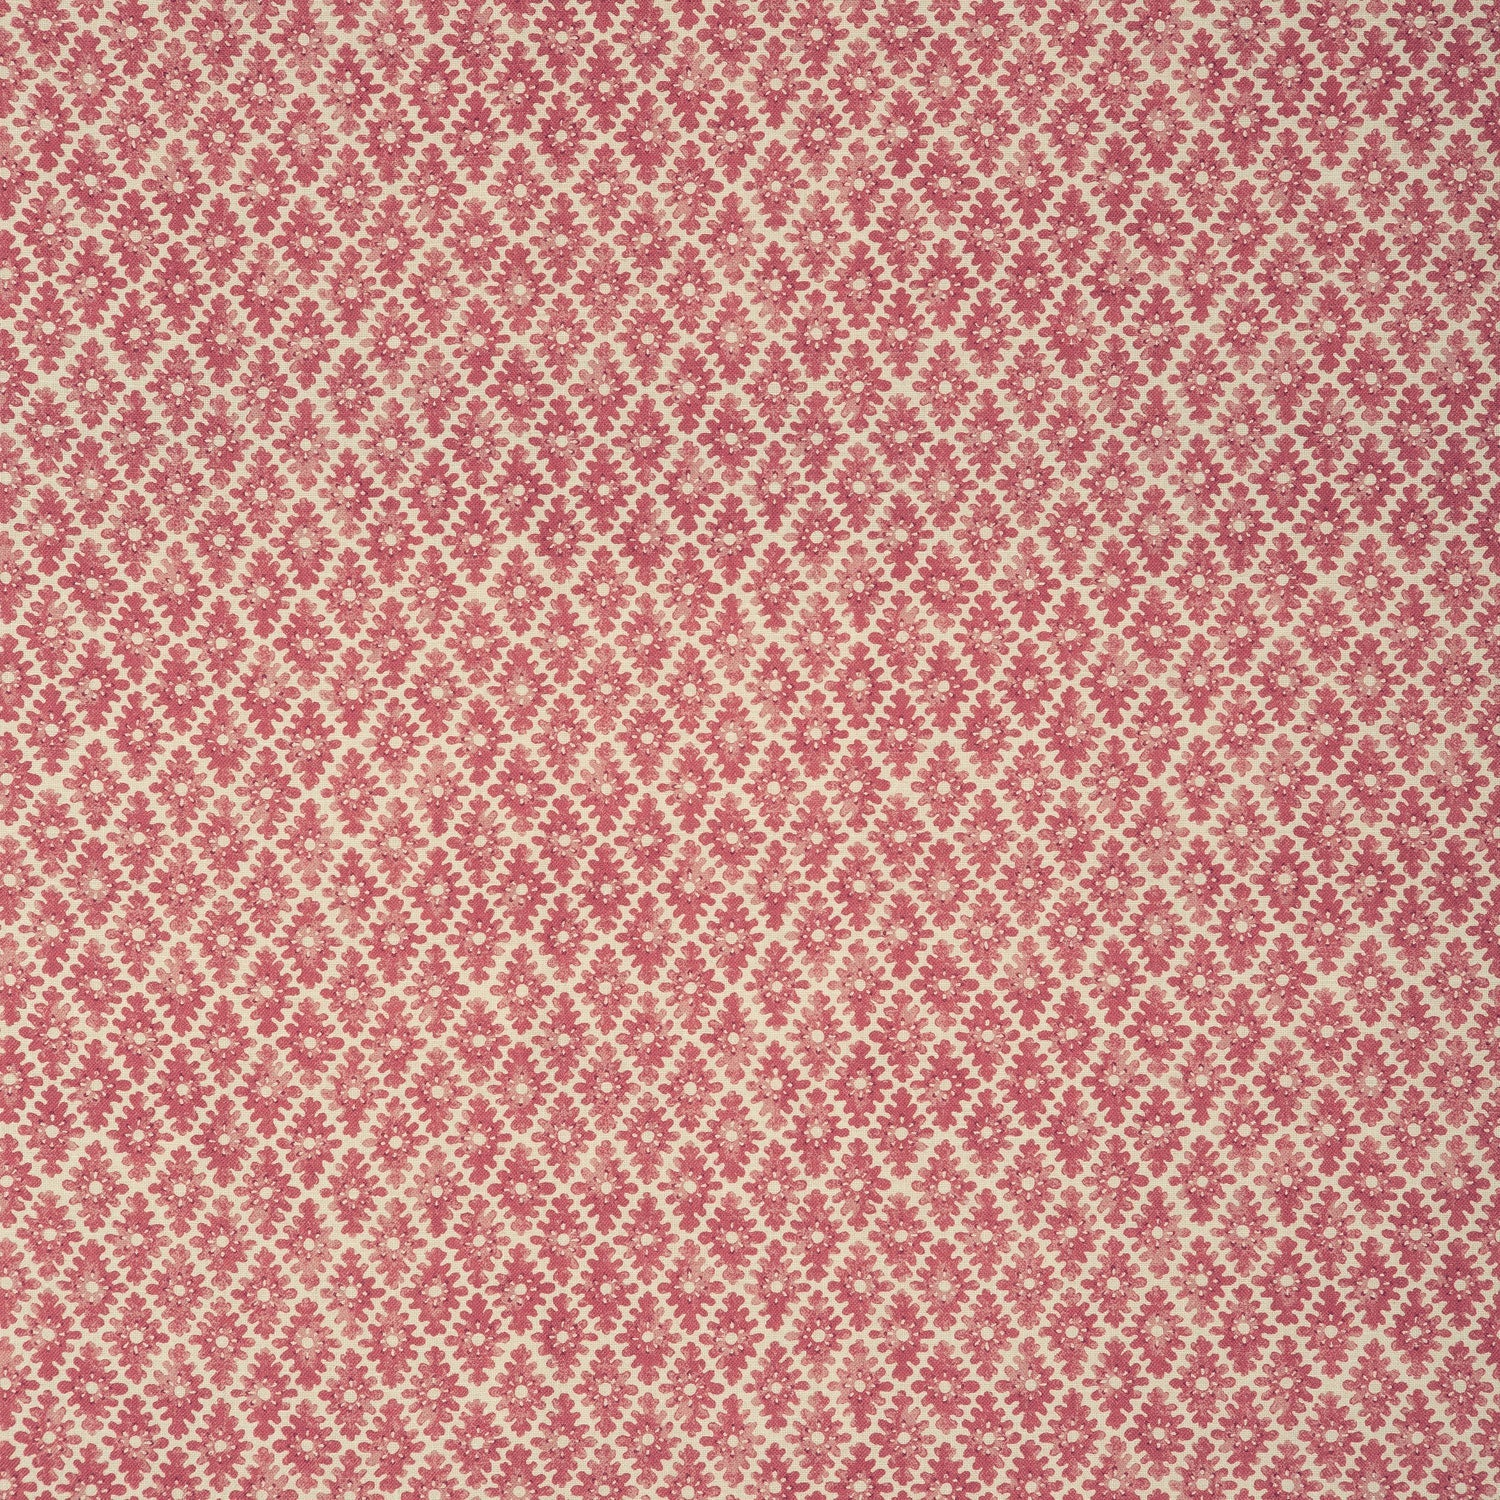 Fabric sample of a dark pink and neutral printed linen fabric for curtains and upholstery